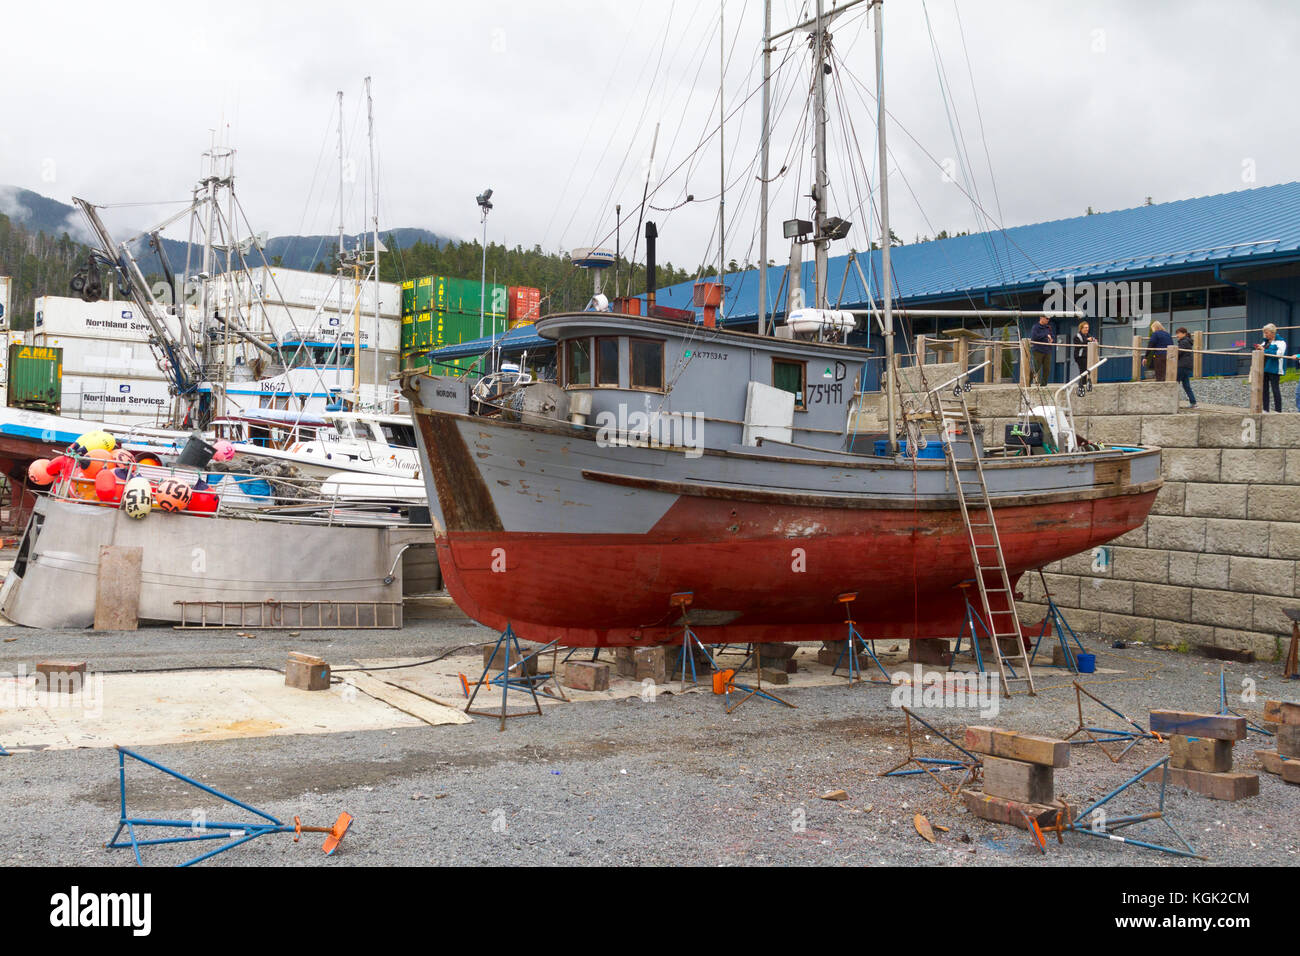 Alaska fishing boat stock photos alaska fishing boat for Alaska fishing boats